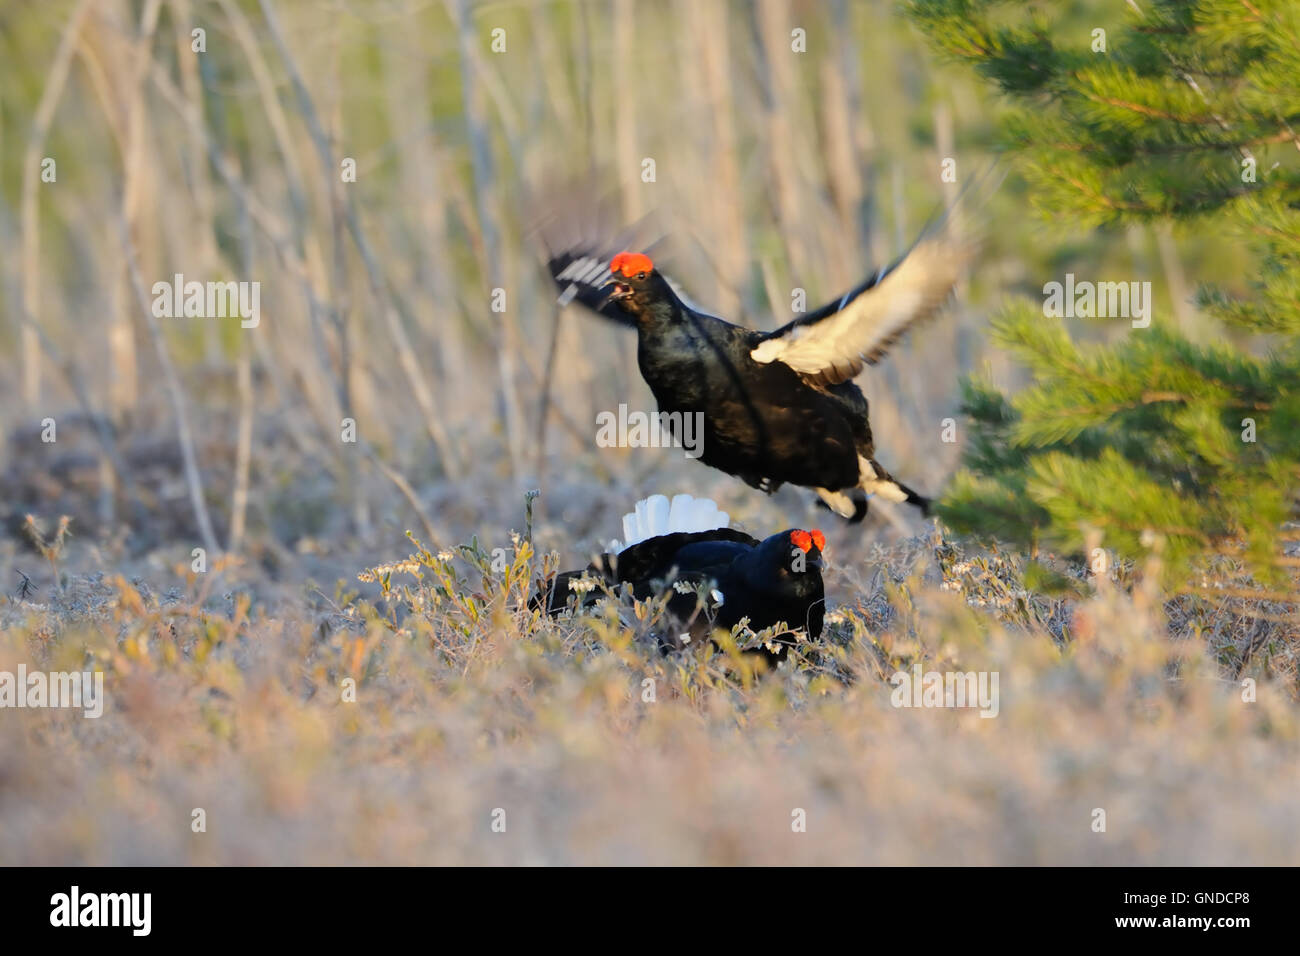 Jumping male Black Grouse (Tetrao tetrix) at swamp courting place early in the morning. - Stock Image